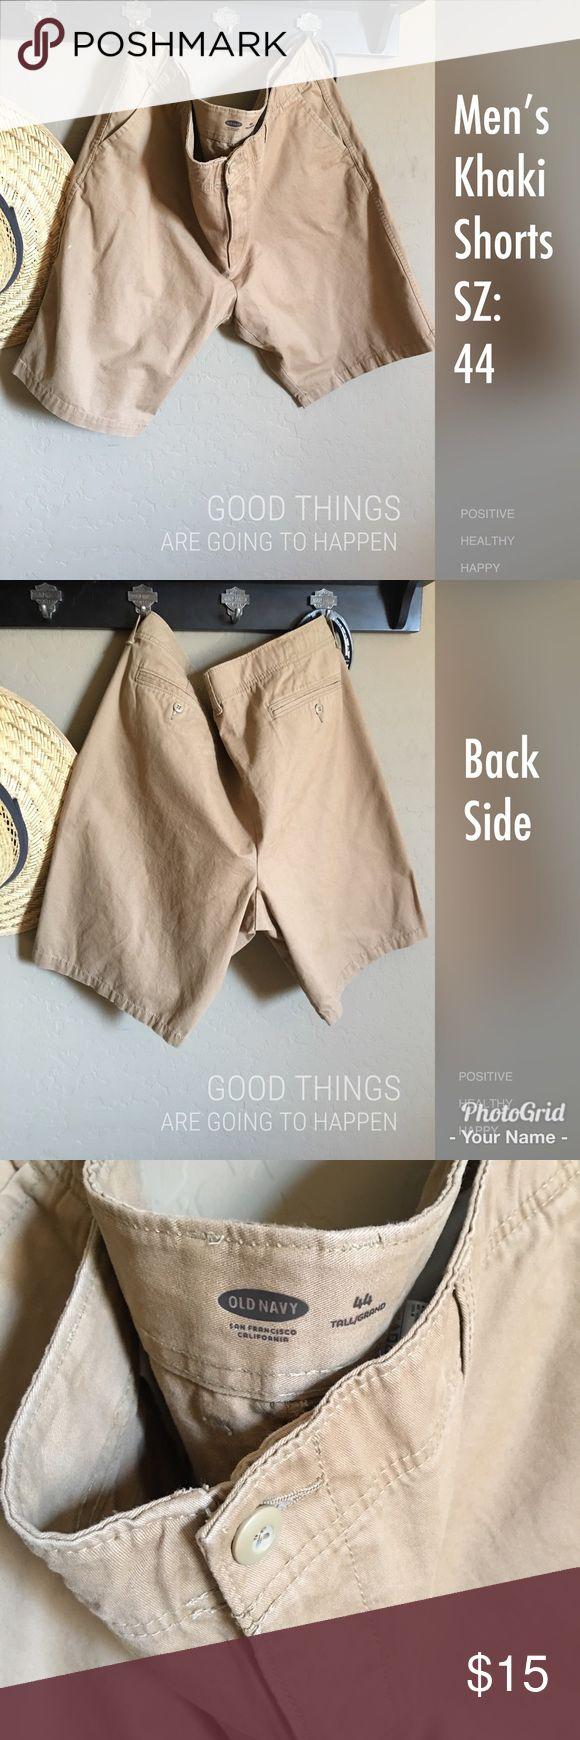 Men's Khaki Shorts Great condition used item. Men's Kahlo shorts from Old Navy size 44. (Big and Tall) Old Navy Shorts